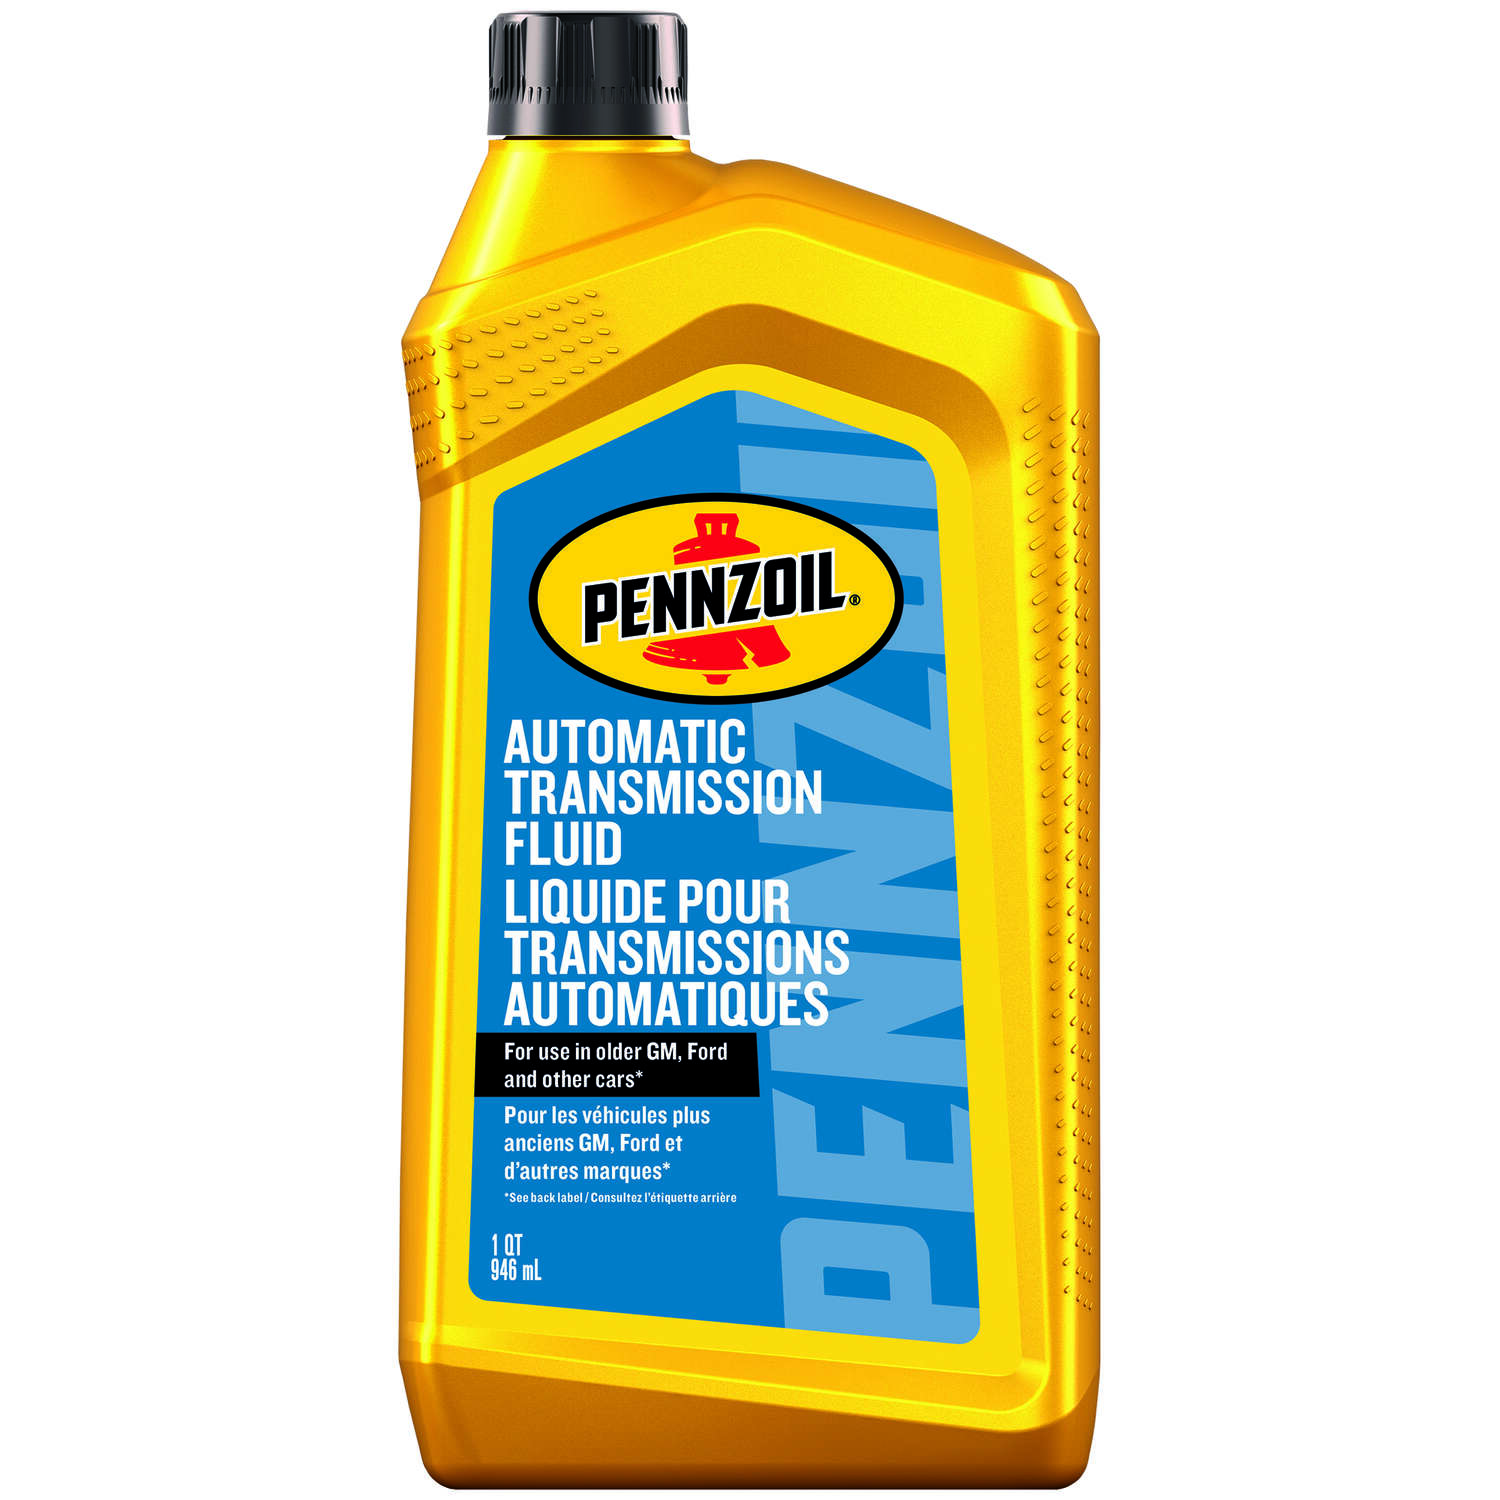 PENNZOIL  ATF+4  Automatic Transmission Fluid  1 qt.